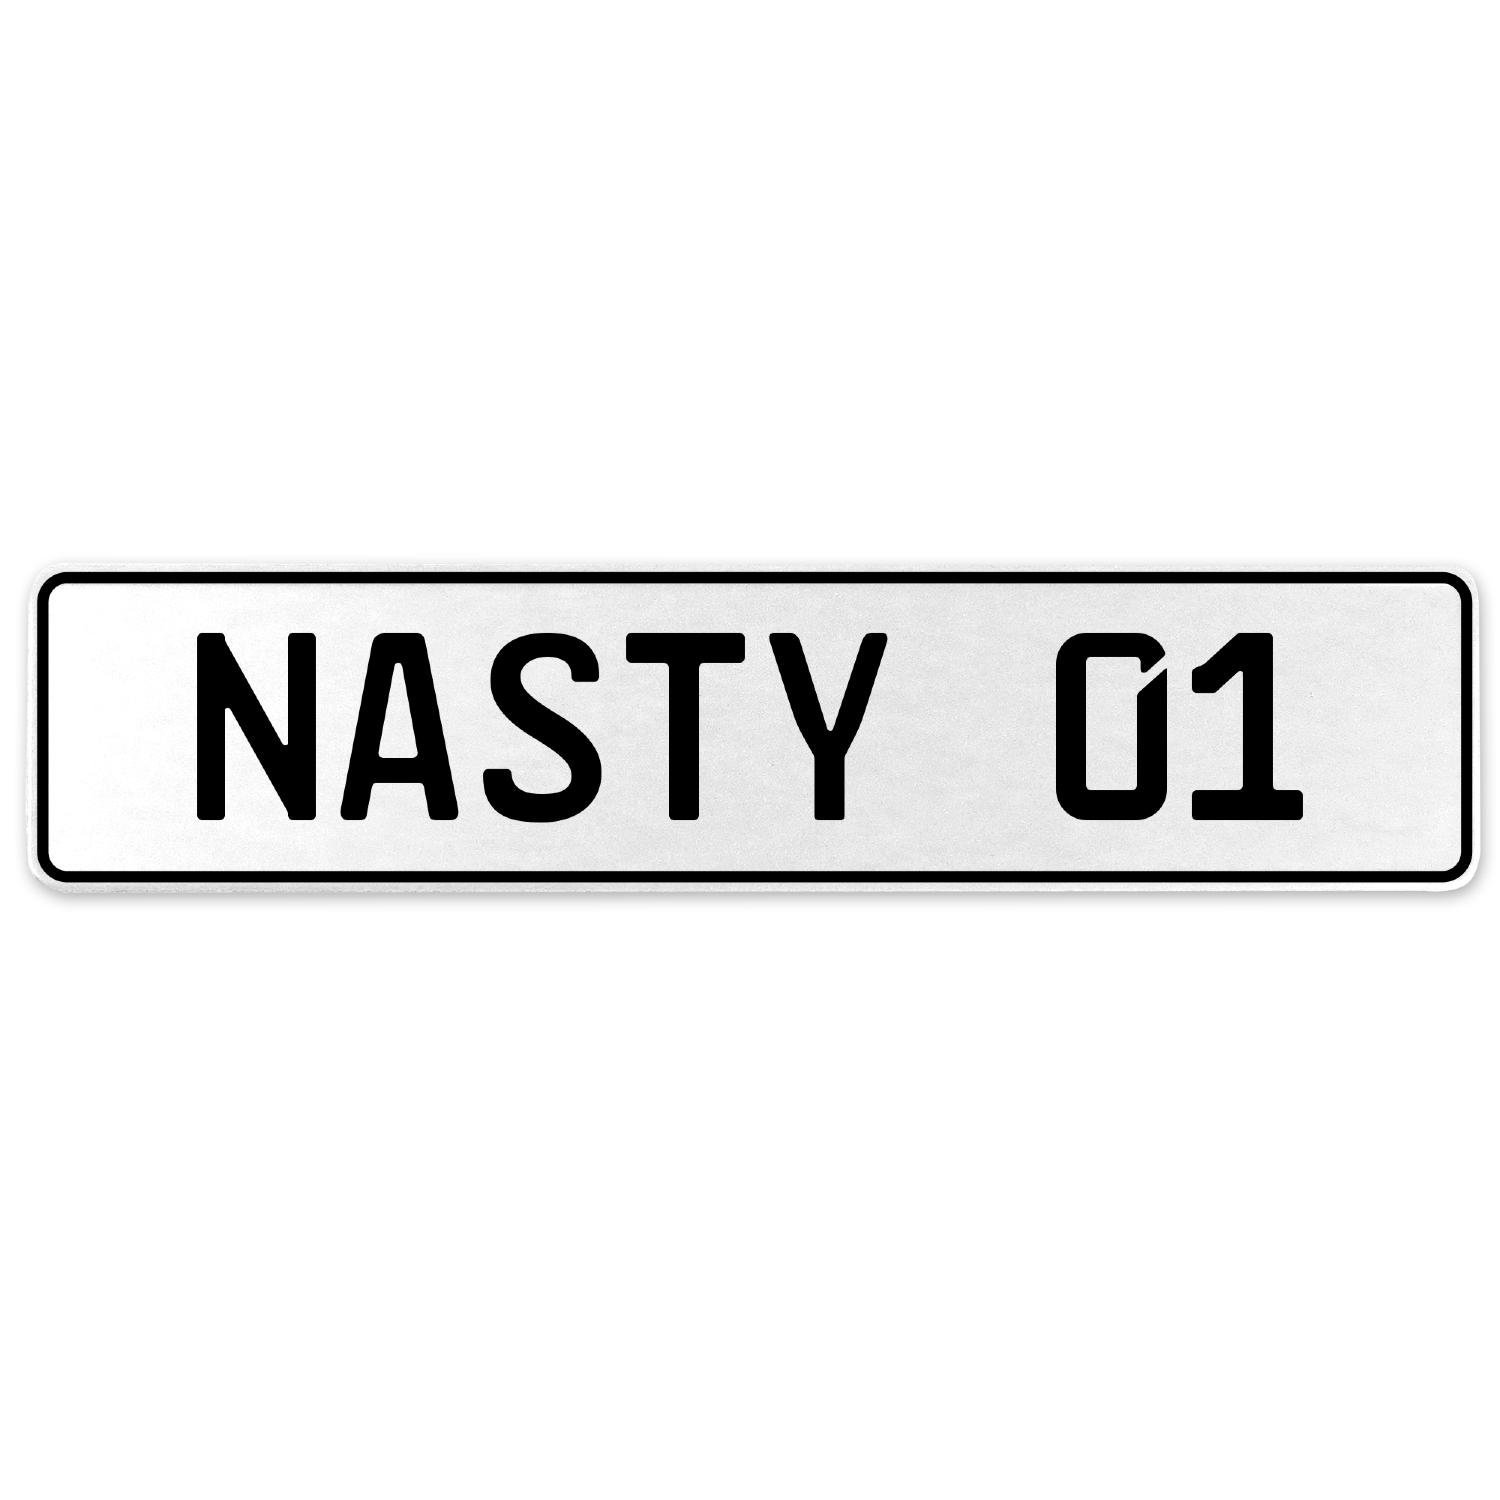 Vintage Parts 556875 Nasty 01 White Stamped Aluminum European License Plate